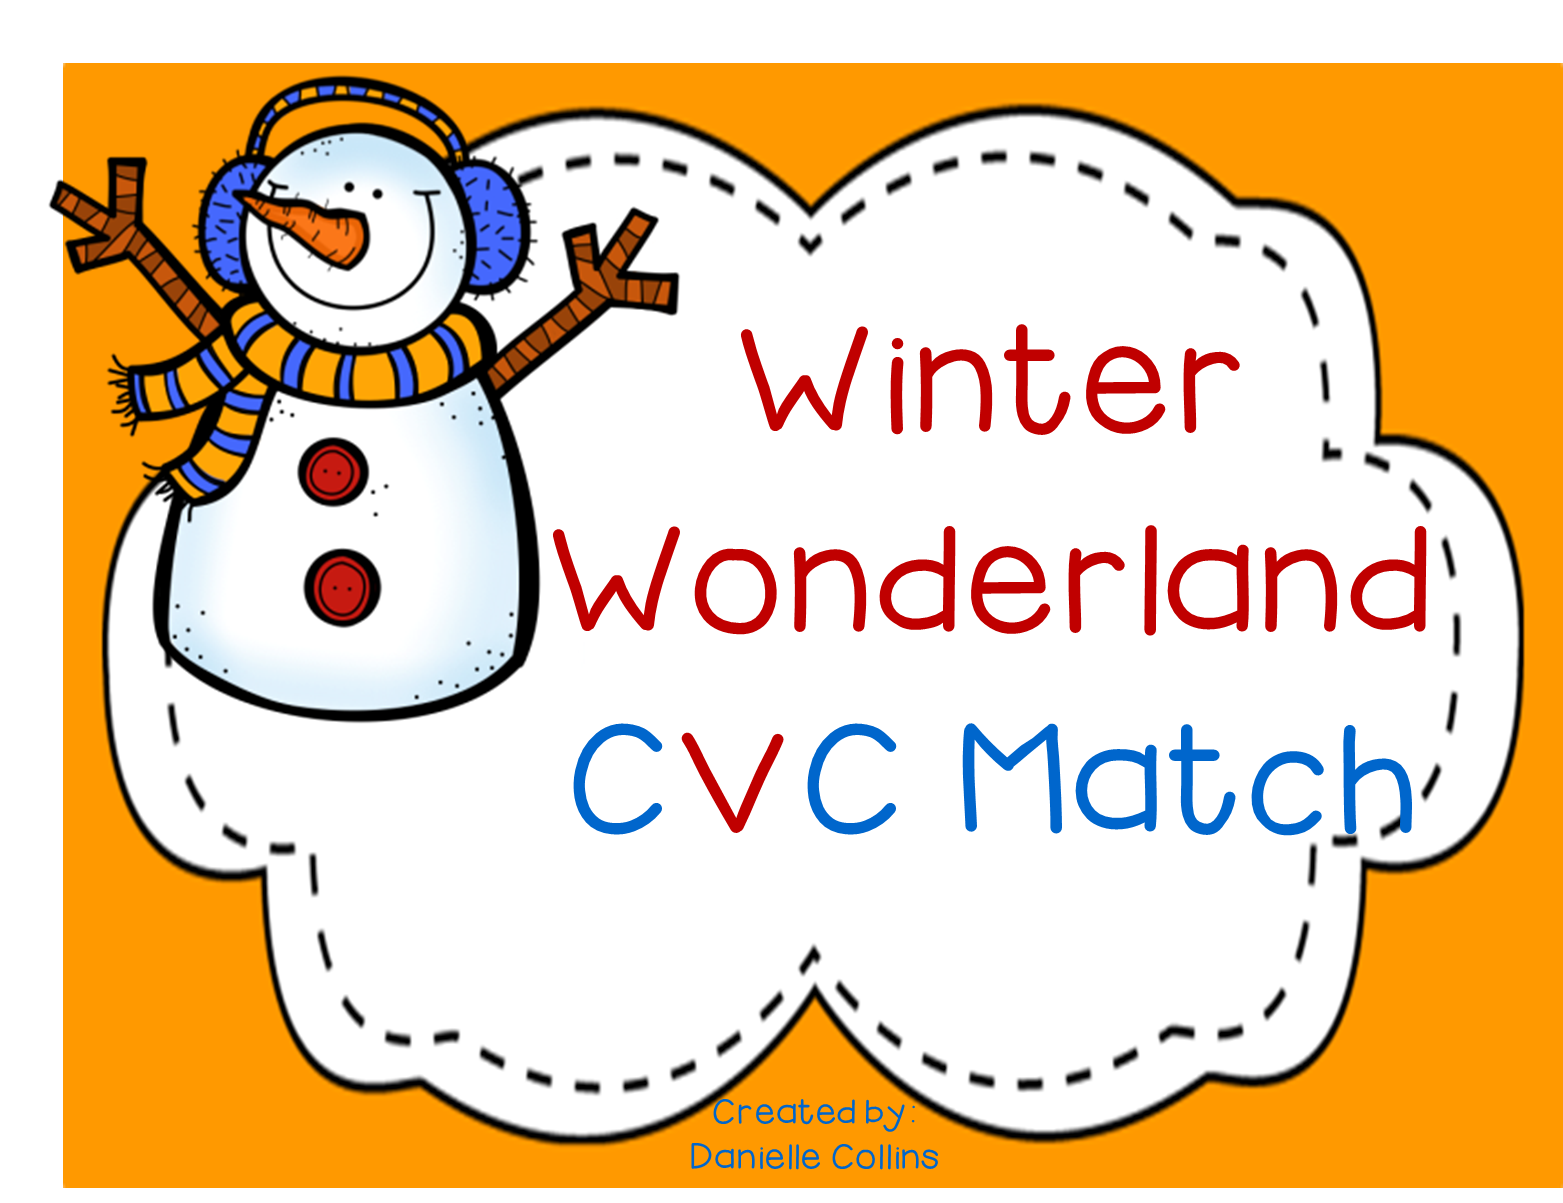 http://www.teacherspayteachers.com/Product/Winter-Wonderland-CVC-Freebie-1607361